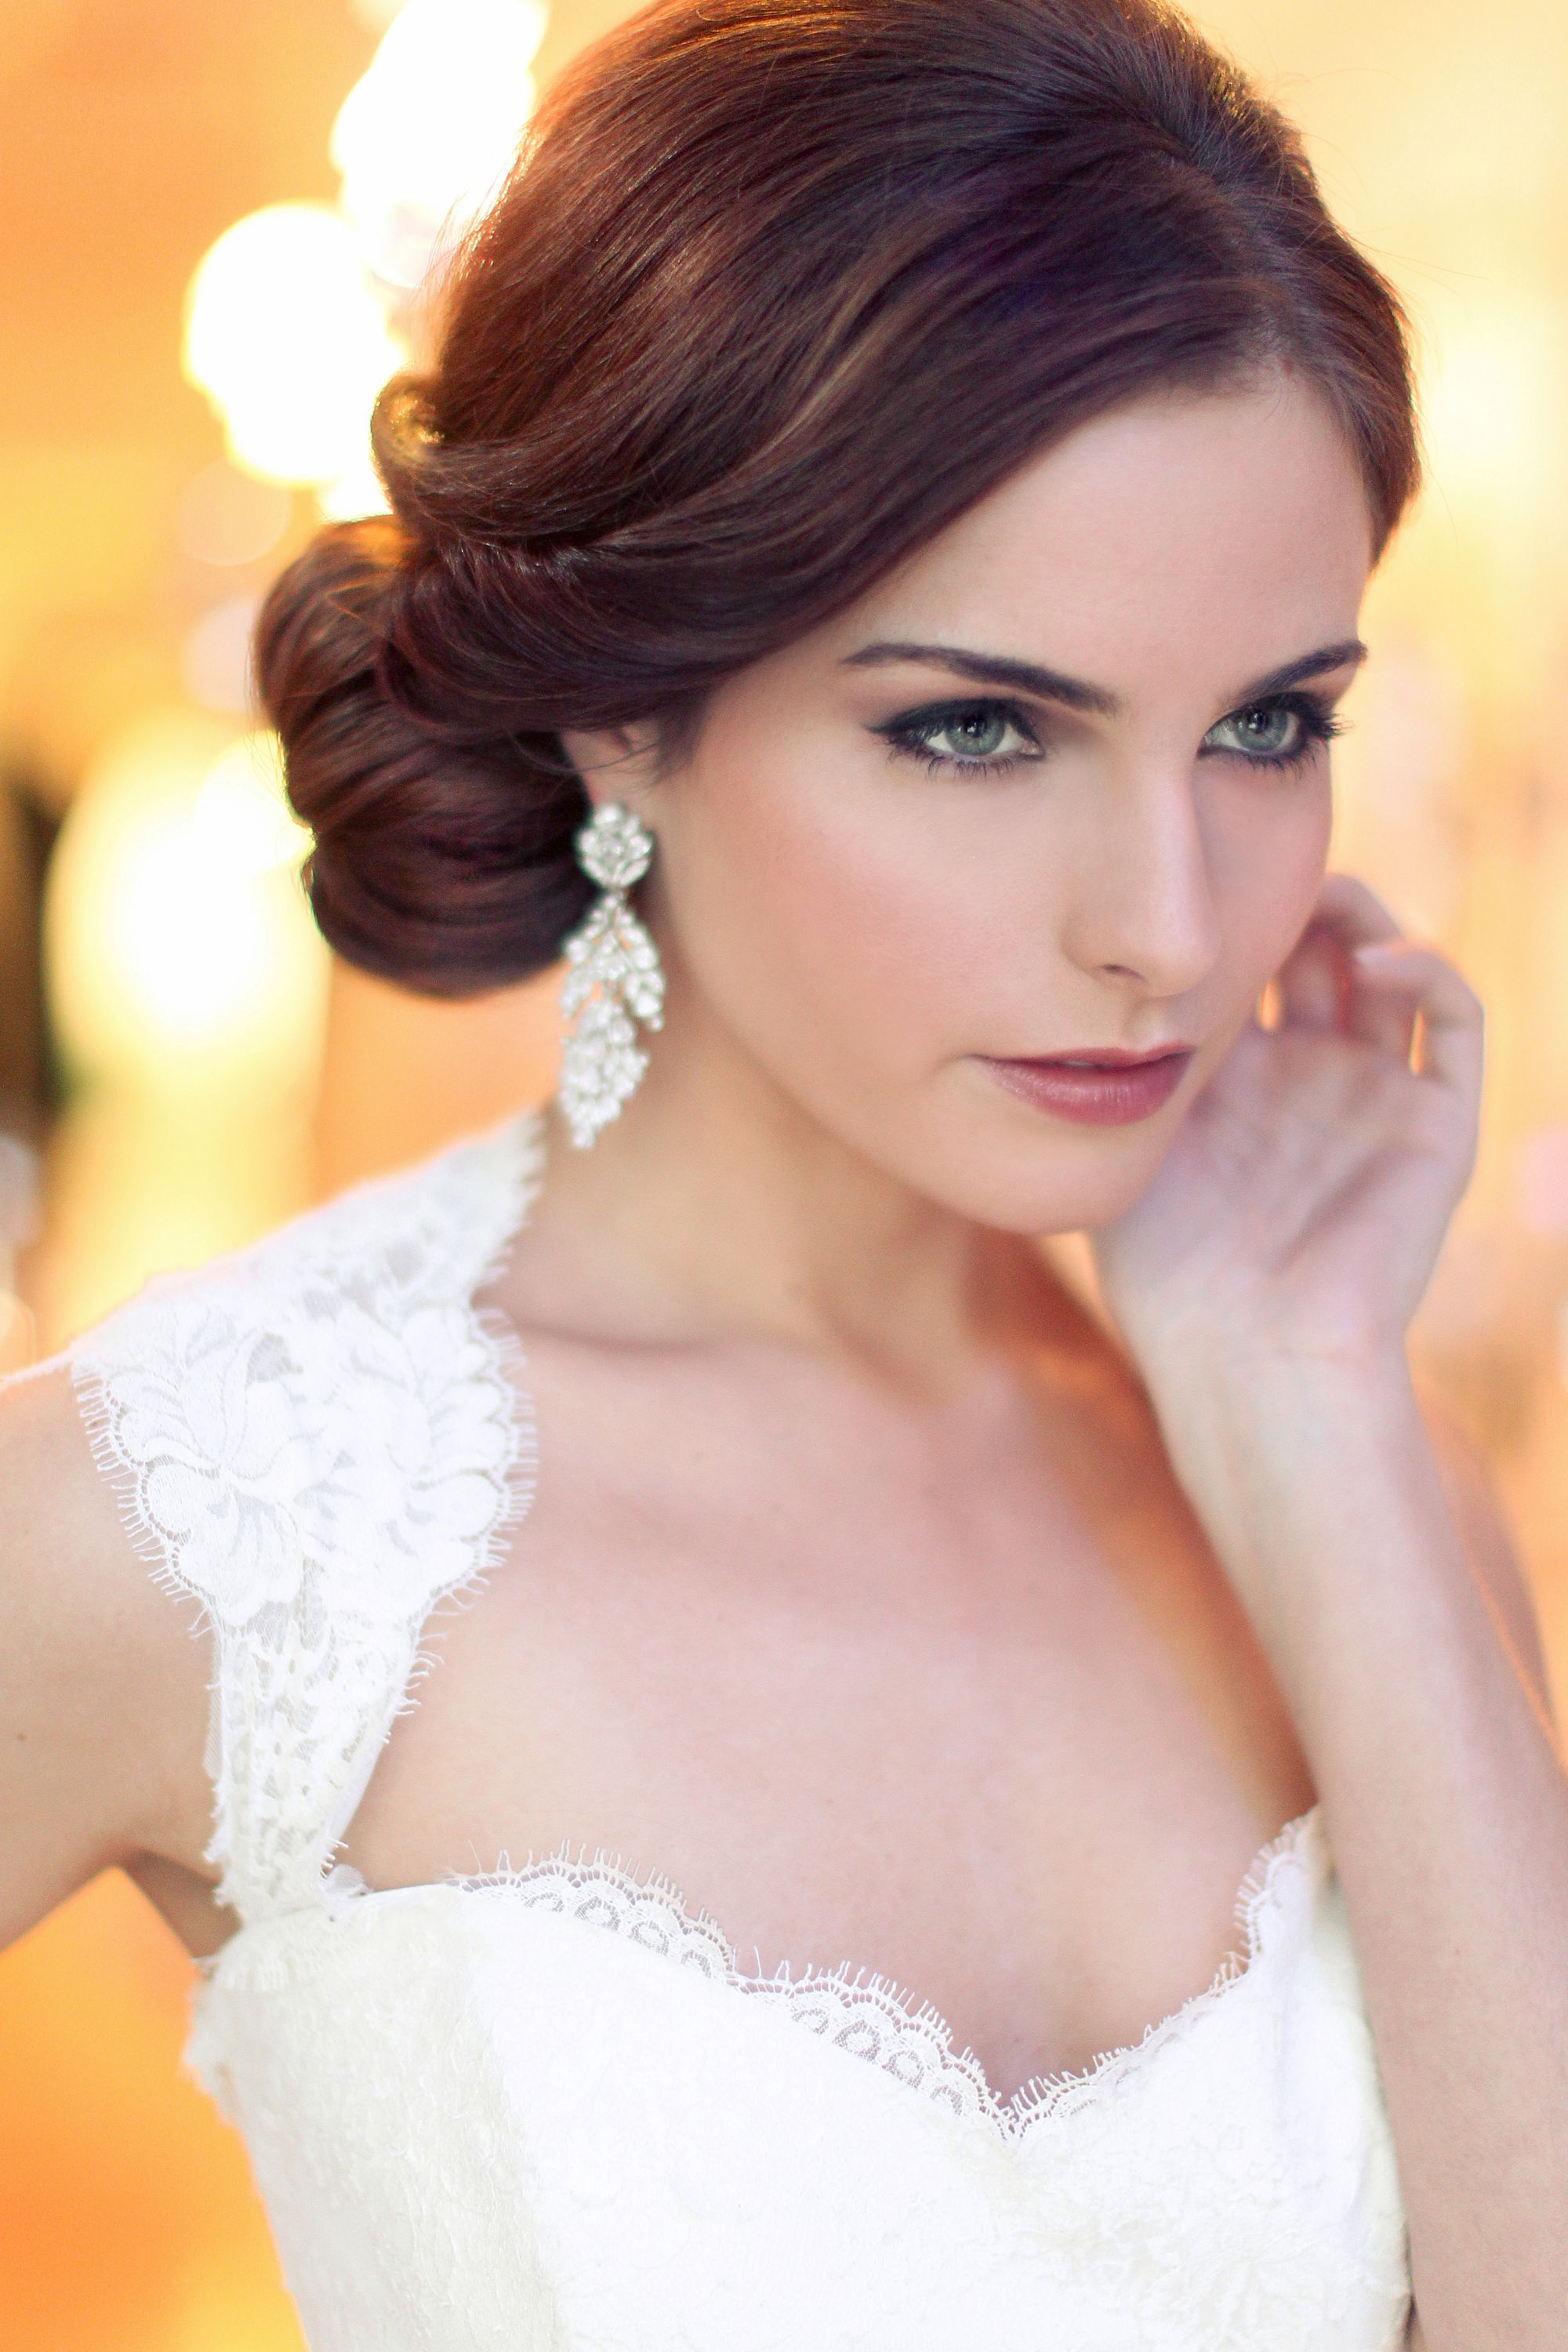 vintage hair and makeup wedding |  / hair by mandy from la